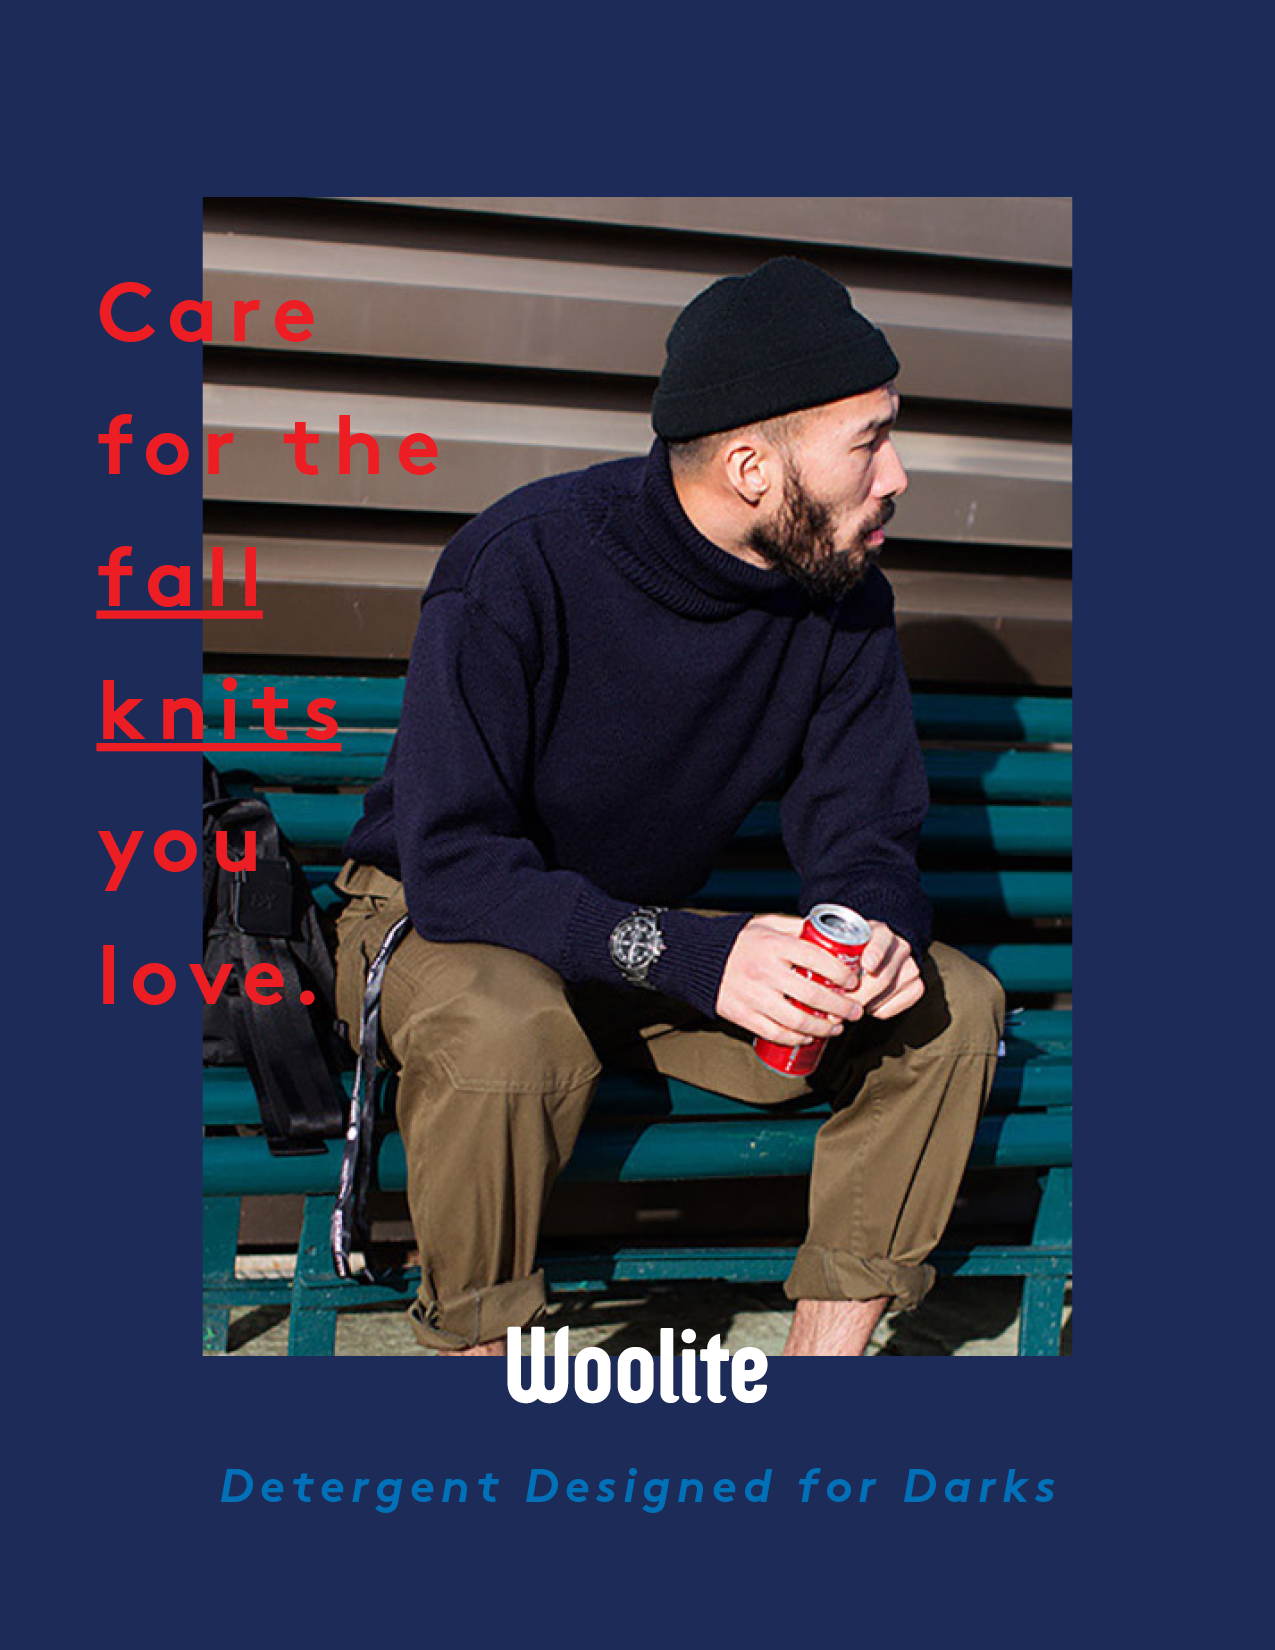 Woolite_Ads_Care_10.6-1